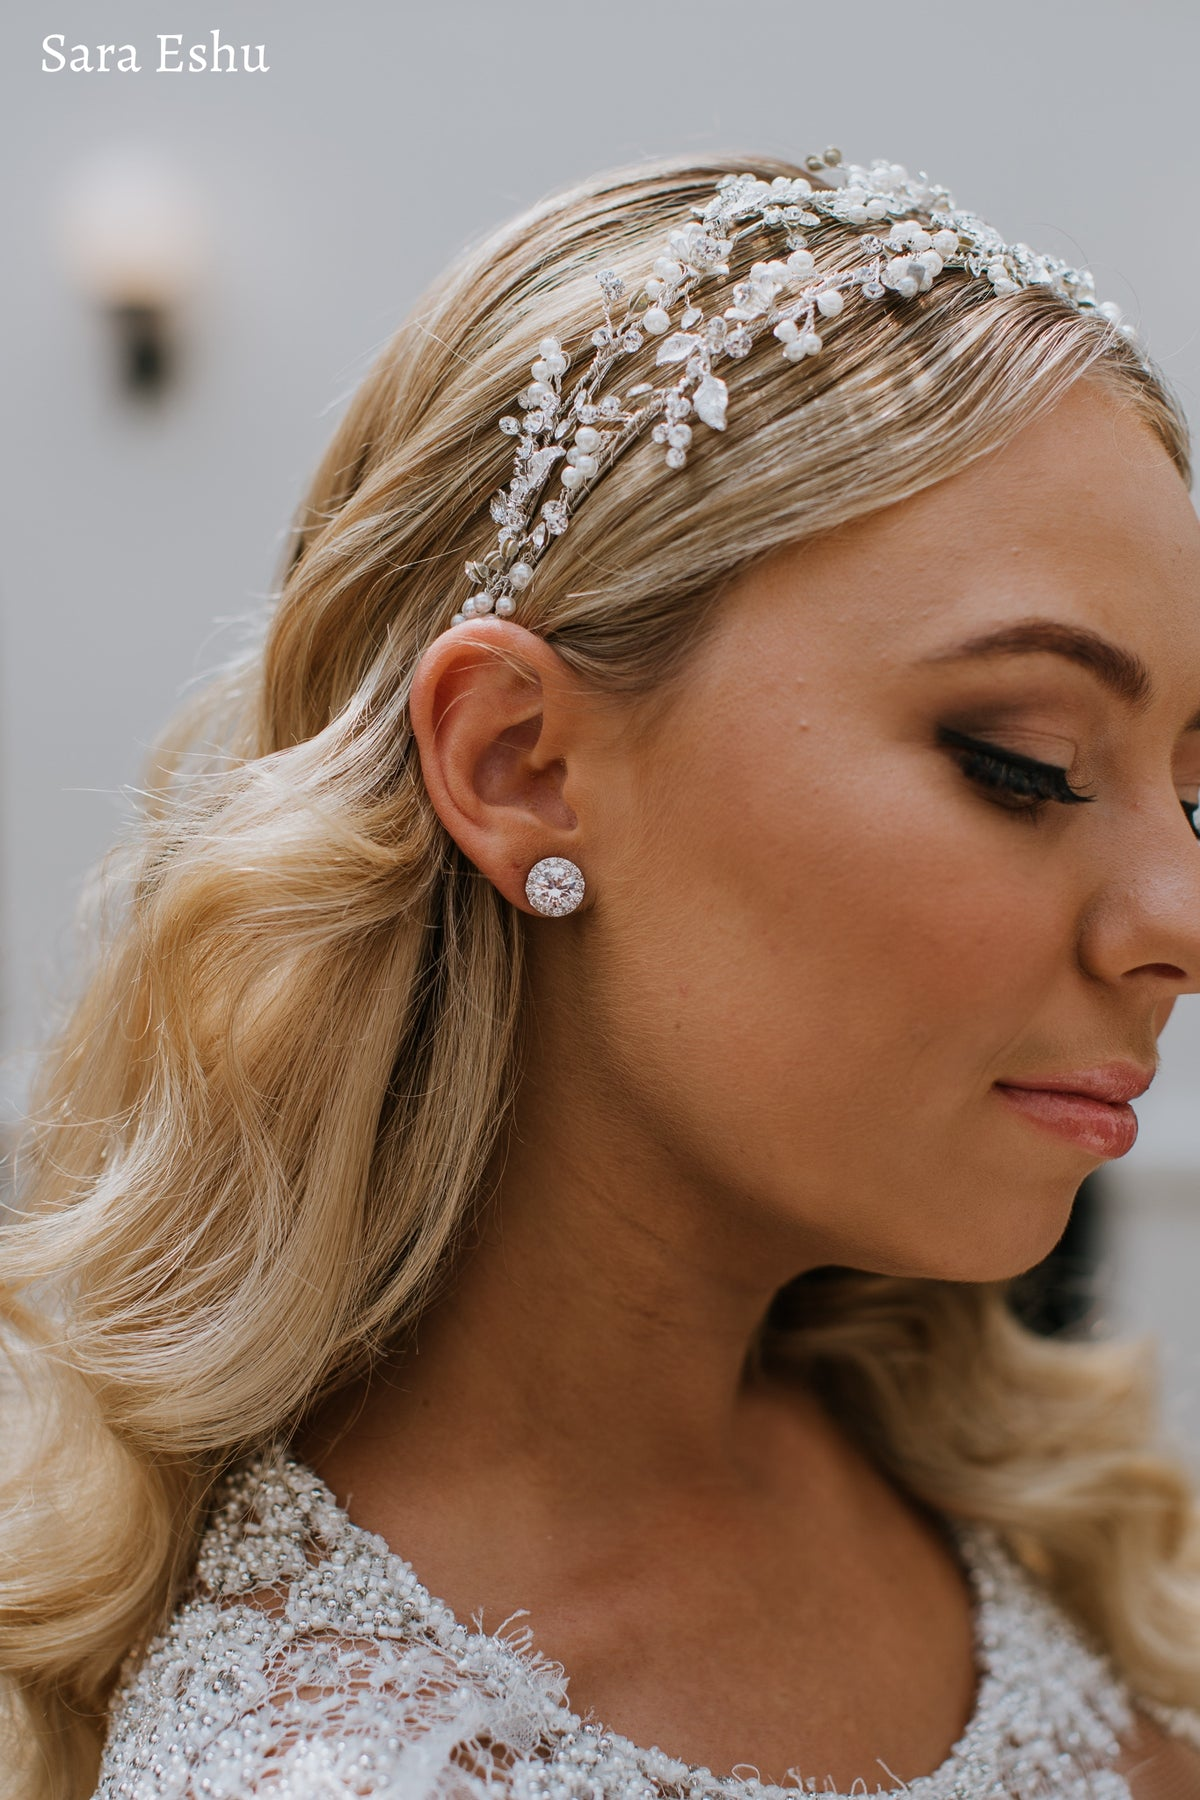 Natalie - Lovely Round Bridal Stud